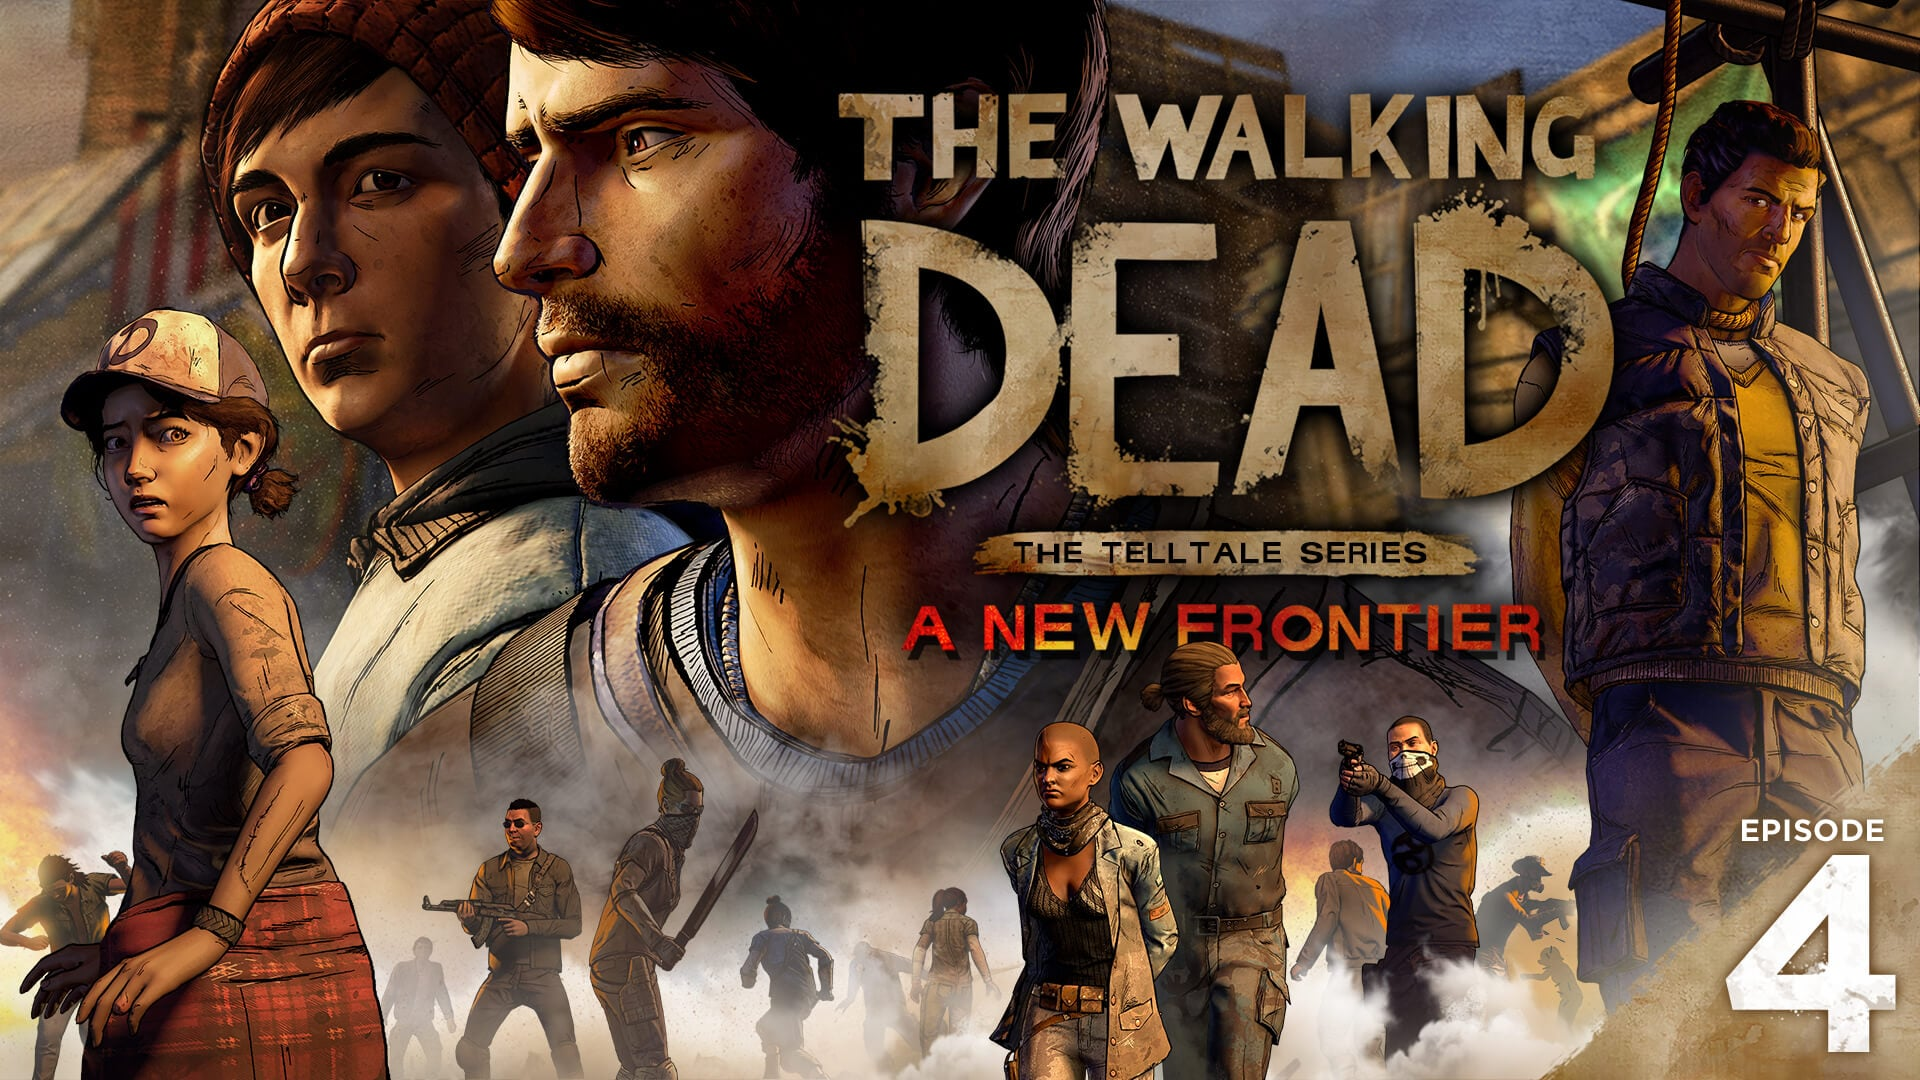 The Walking Dead A New Frontier Episode 4 Review